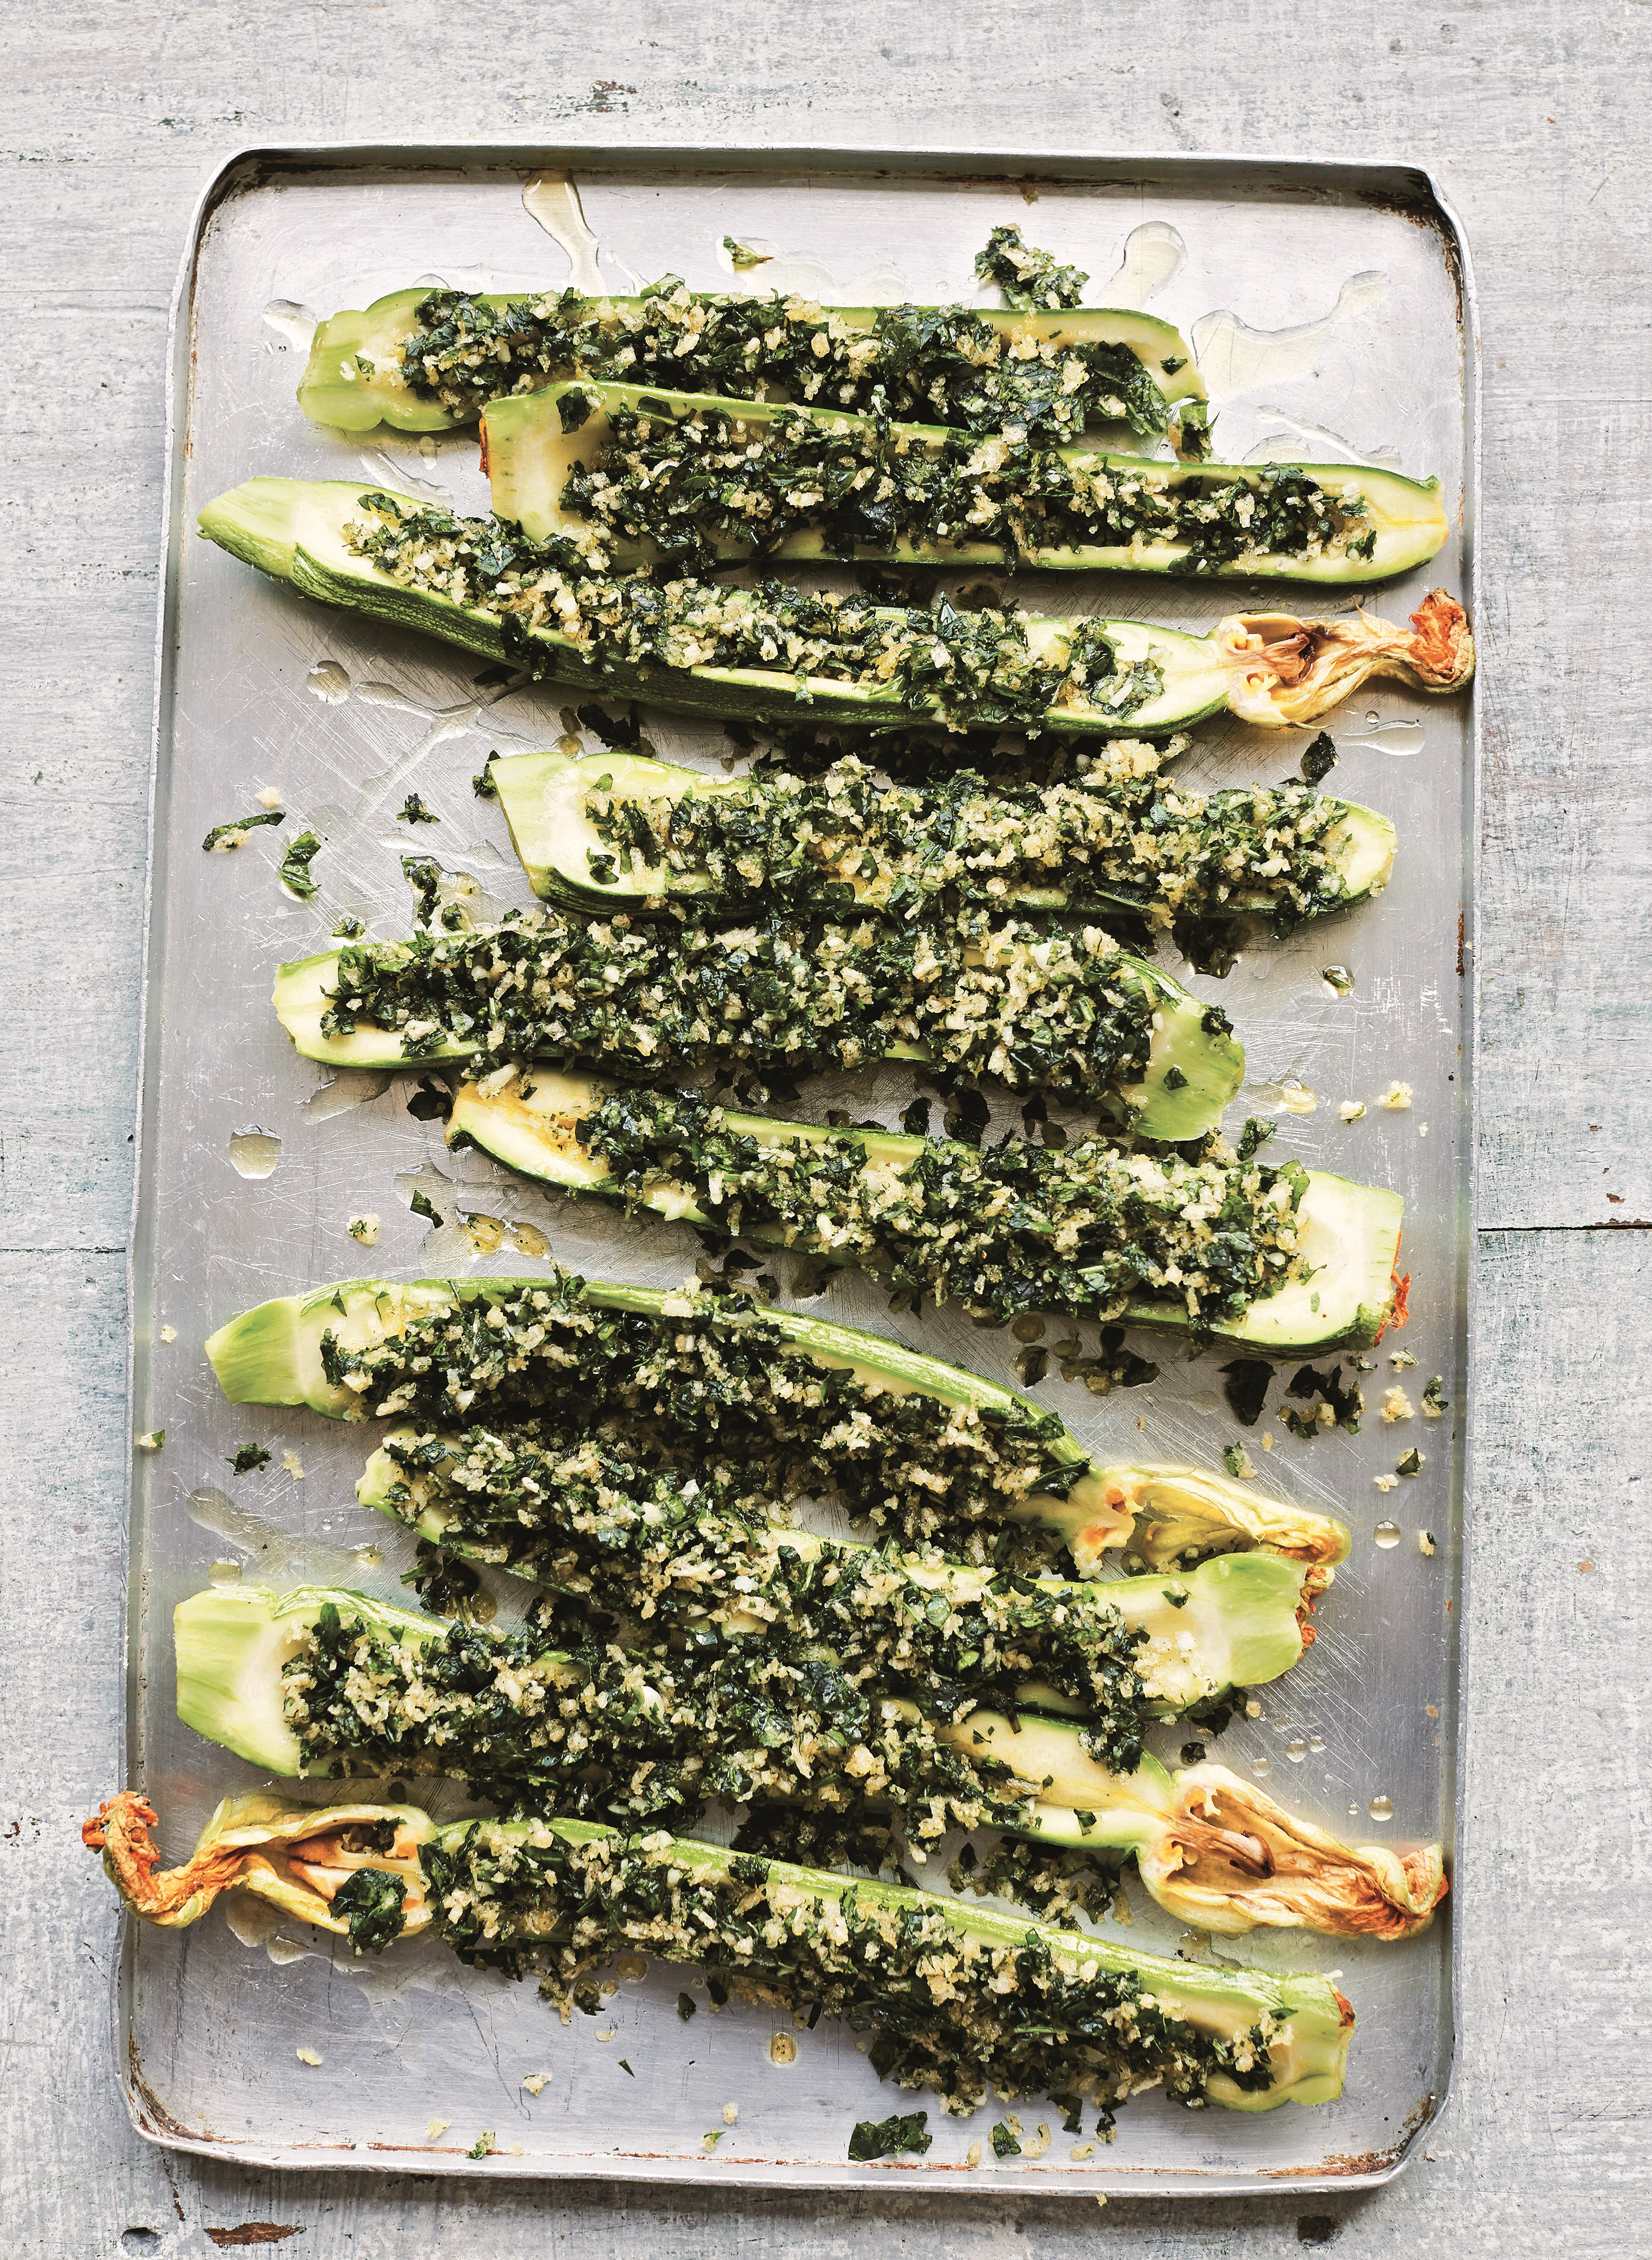 baked courgettes with mint and garlic from Vegetables all'Italiana by Anna Del Conte (Pavilion Books/Laura Edwards/PA)